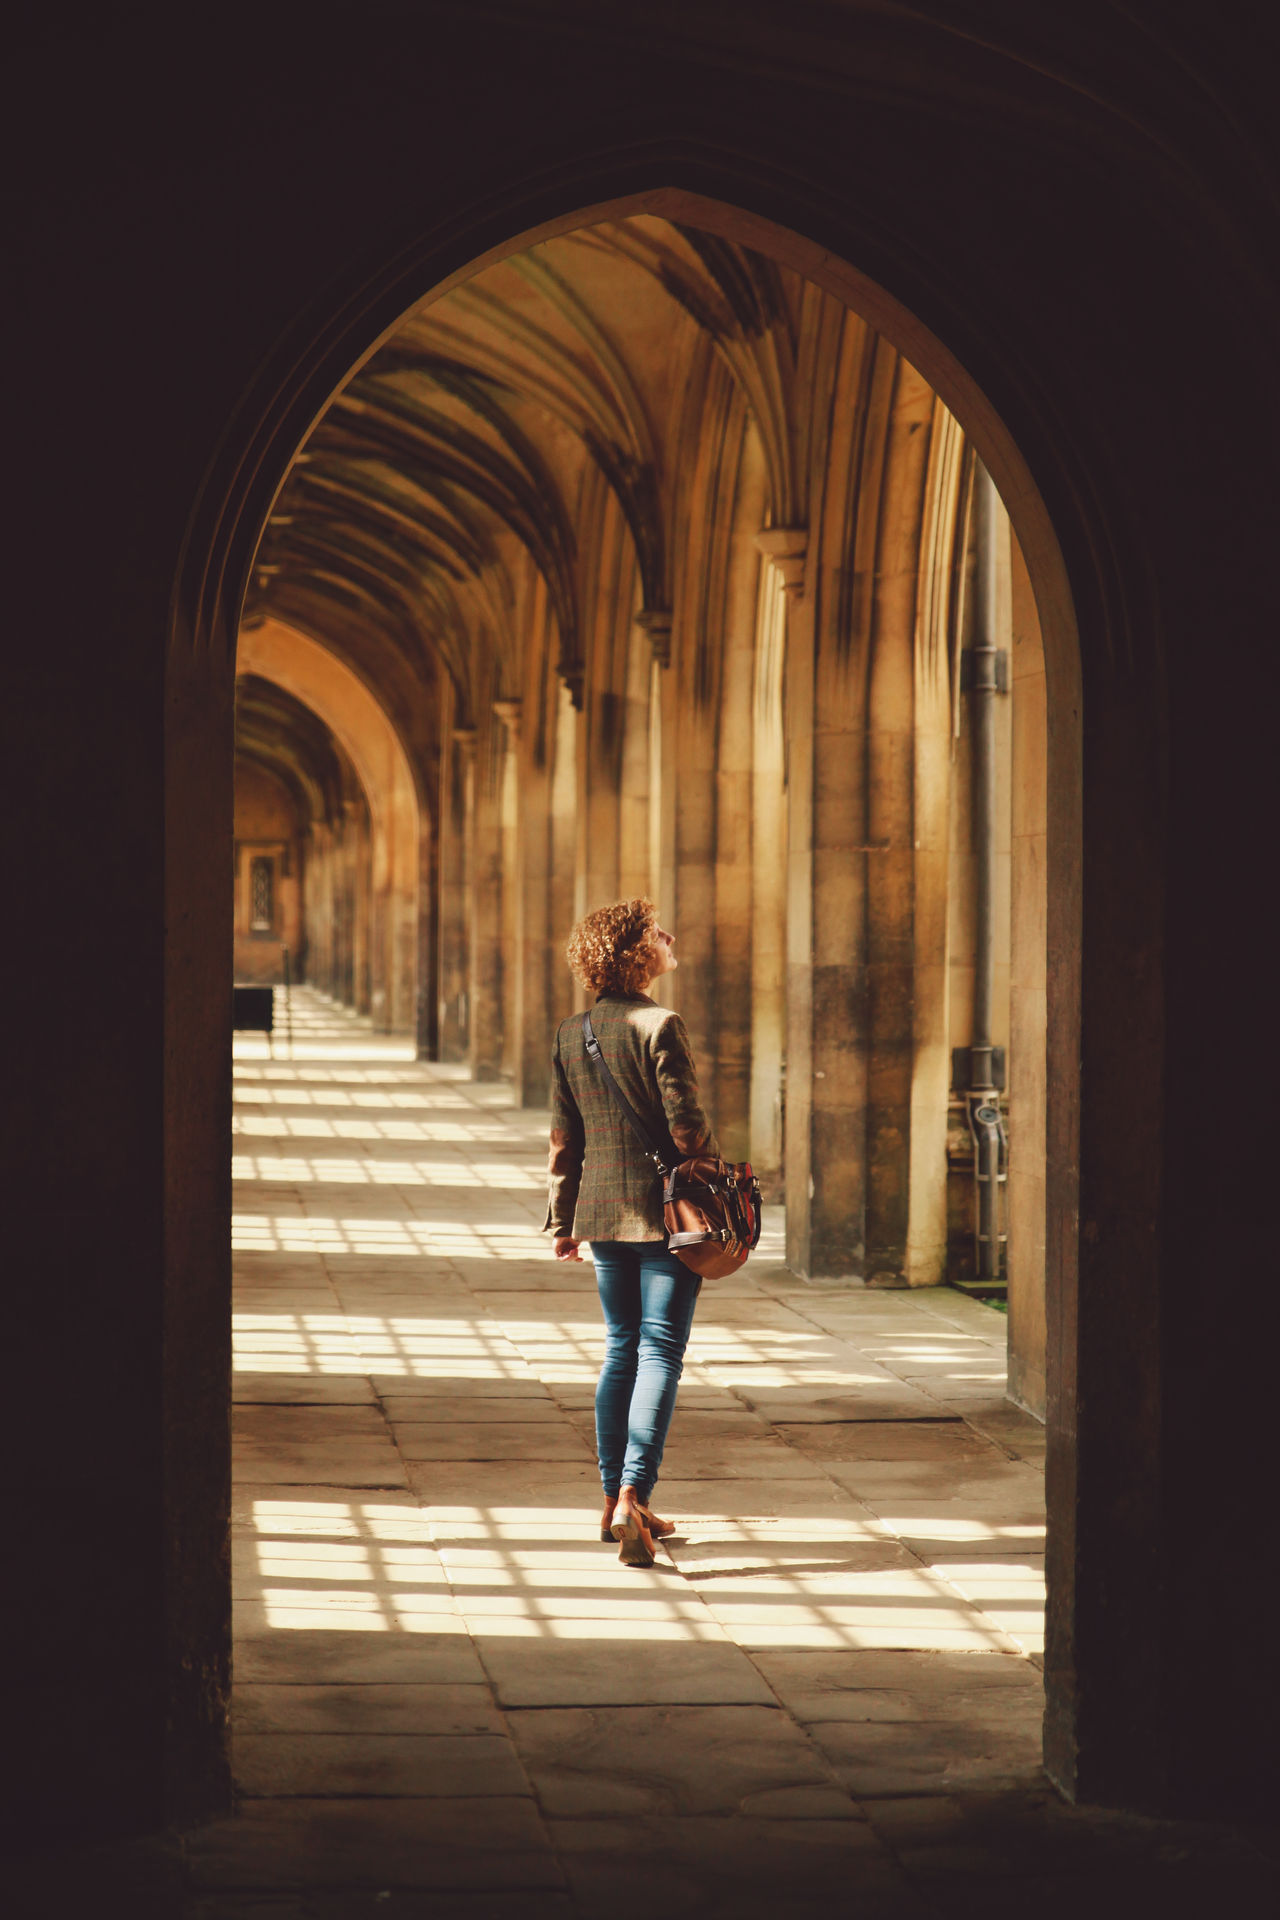 Alone Arch Architectural Column Architecture Archway Built Structure Corridor Countour Curly Hair Front View Full Length Girl Indoors  Leisure Activity Lifestyles Person Rear View Shadow Standing The Way Forward Walking The Portraitist - 2016 EyeEm Awards Feel The Journey 43 Golden Moments People And Places